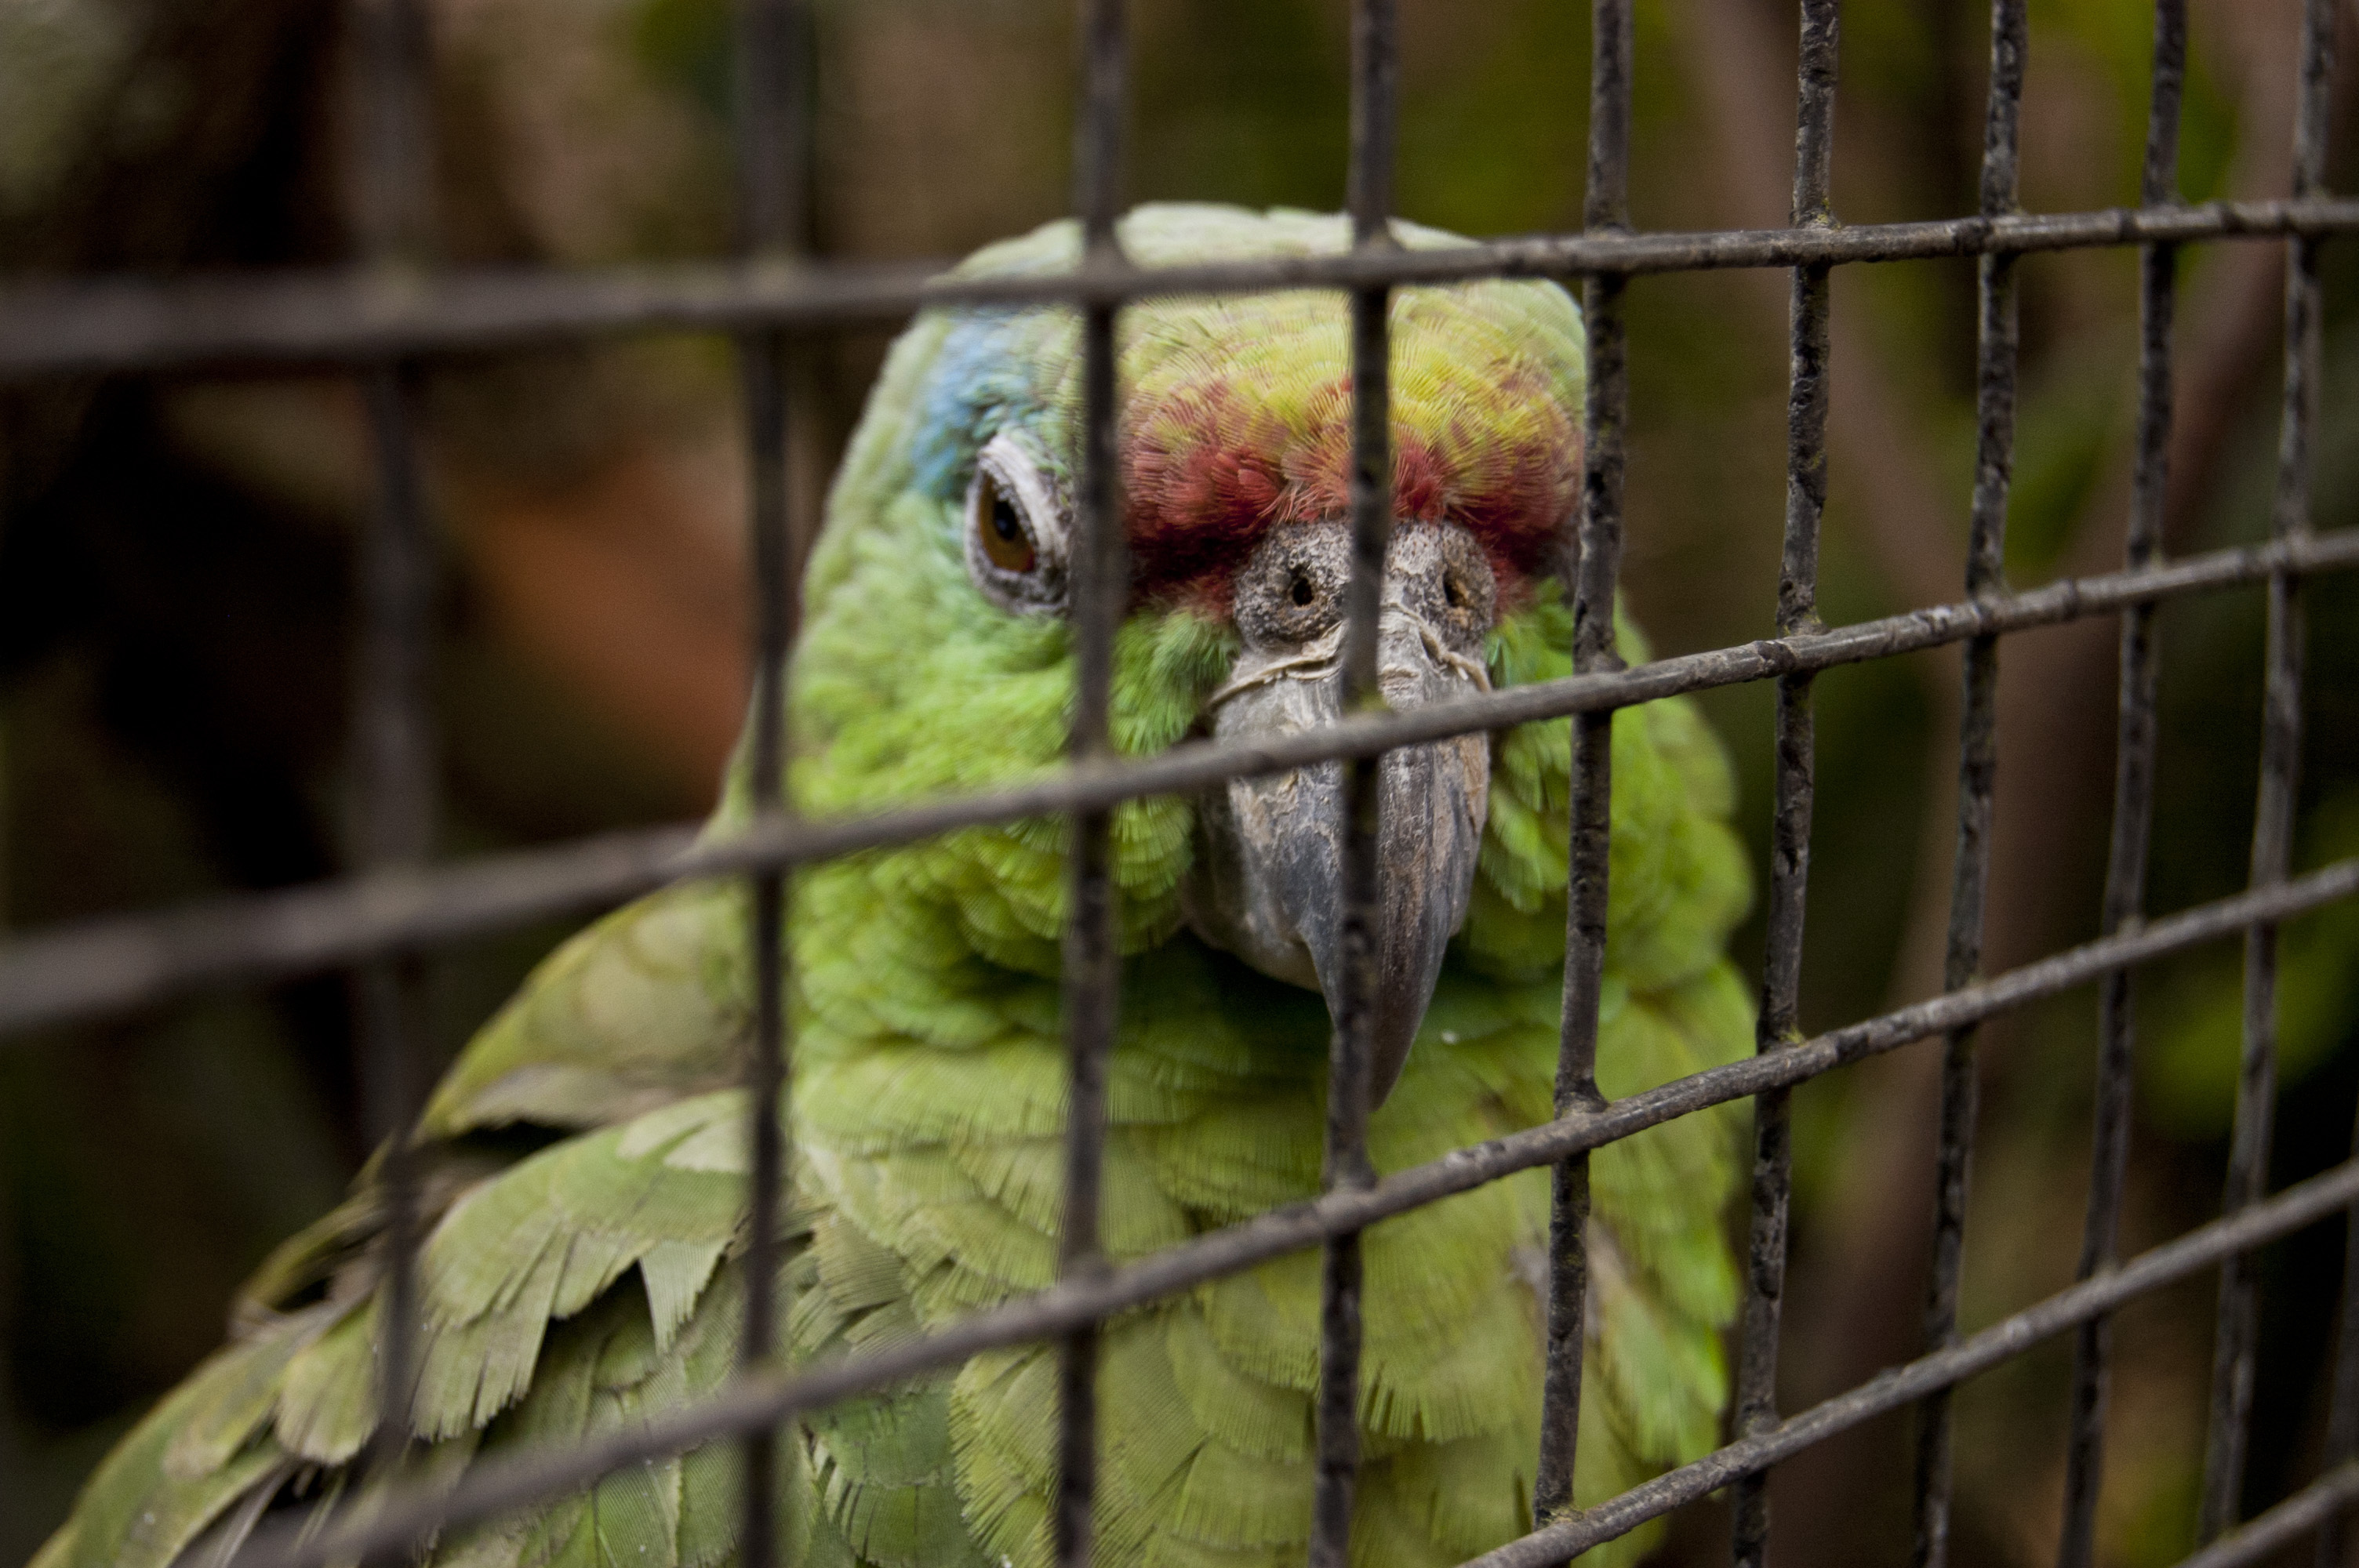 Petition: Find Wildlife Traffickers Who Tossed Exotic Animals Into the Sea to Their Death